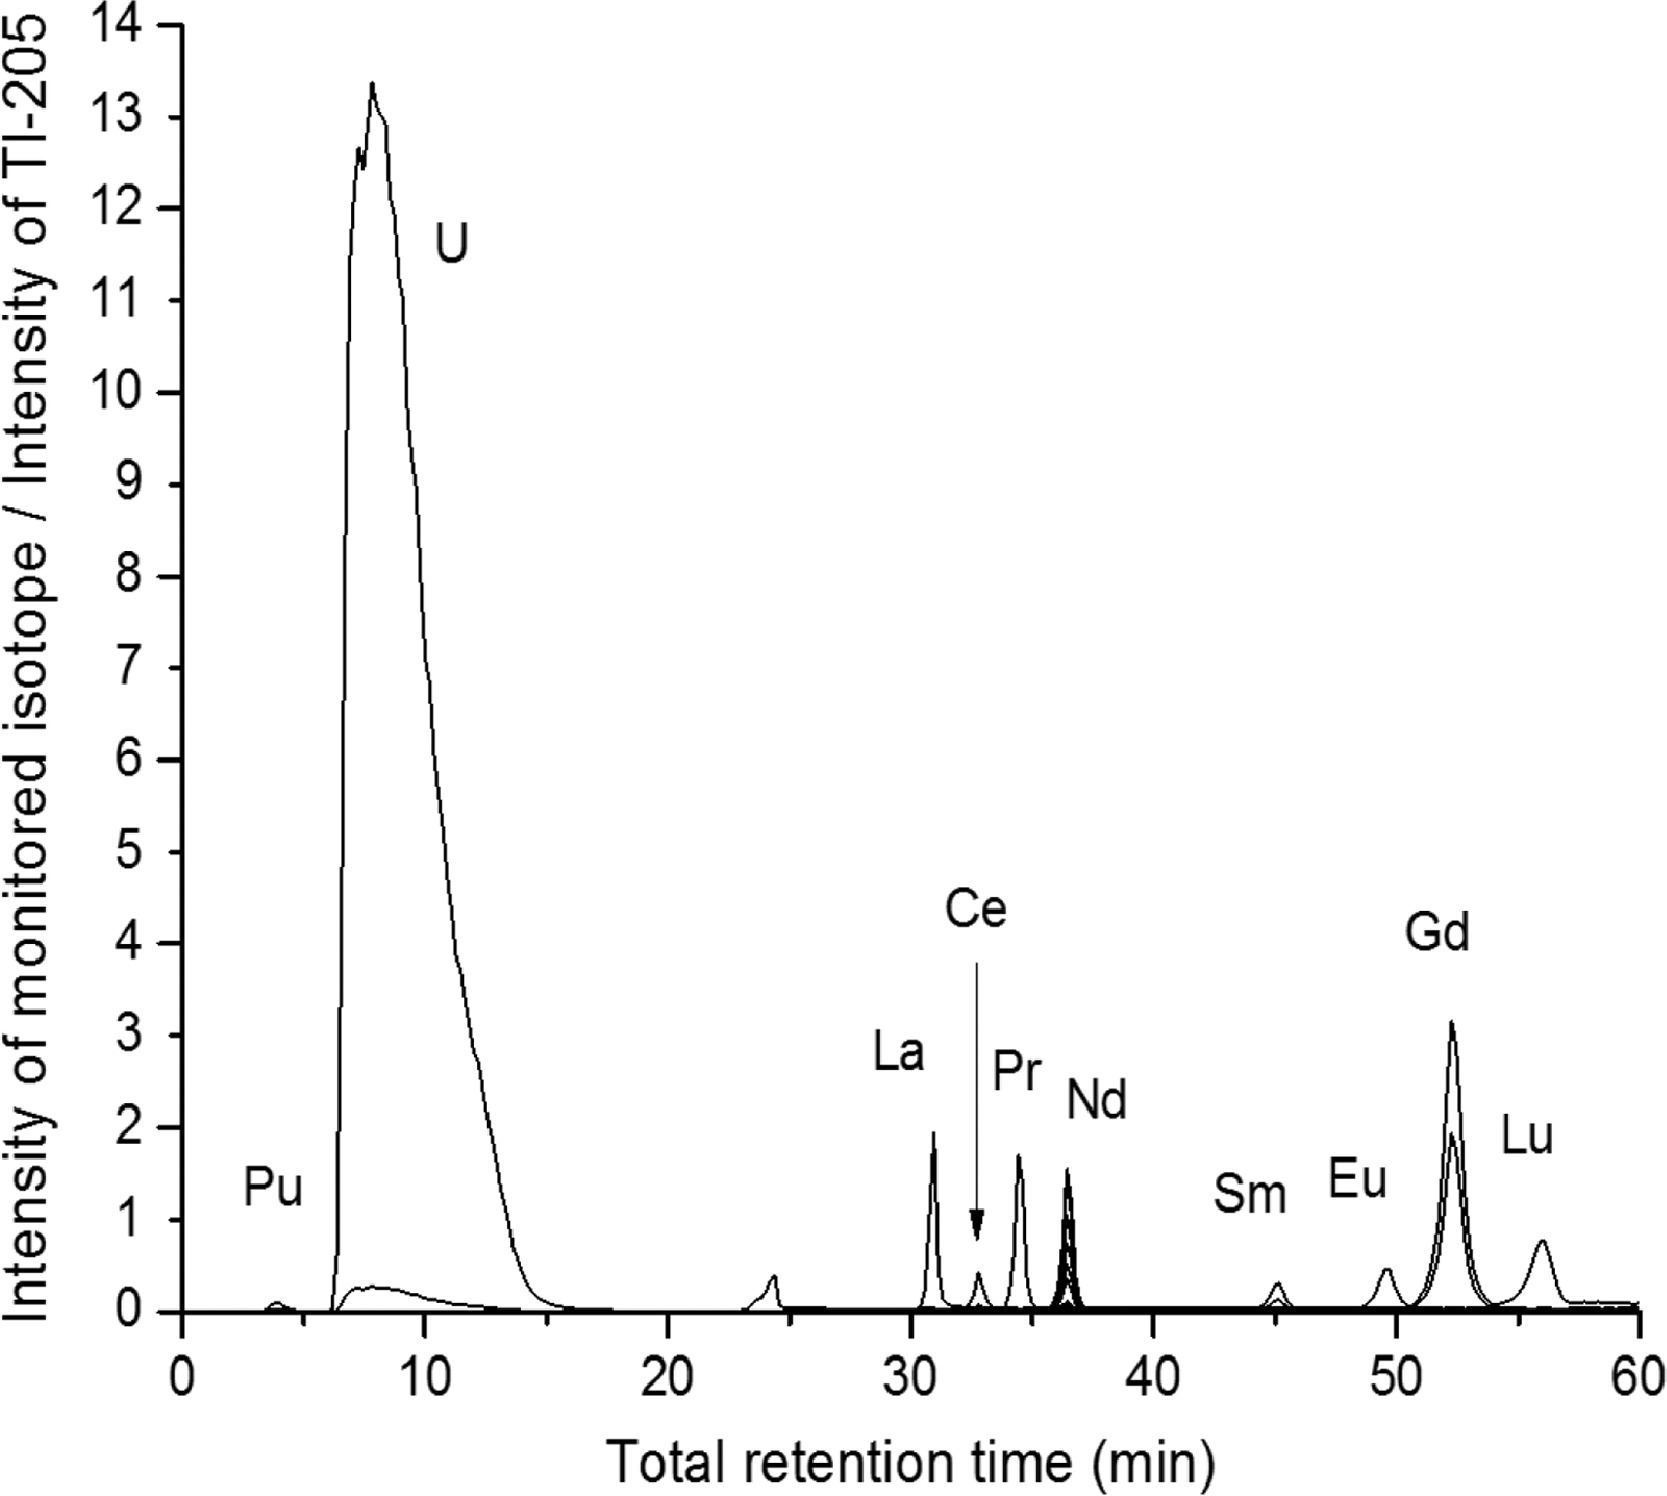 Elution profile of U, Pu, and fissionogenic lanthanides from a spent, Urania-Gadolinia nuclear fuel sample[2] recorded by ICP-MS and using an automated IC routine.